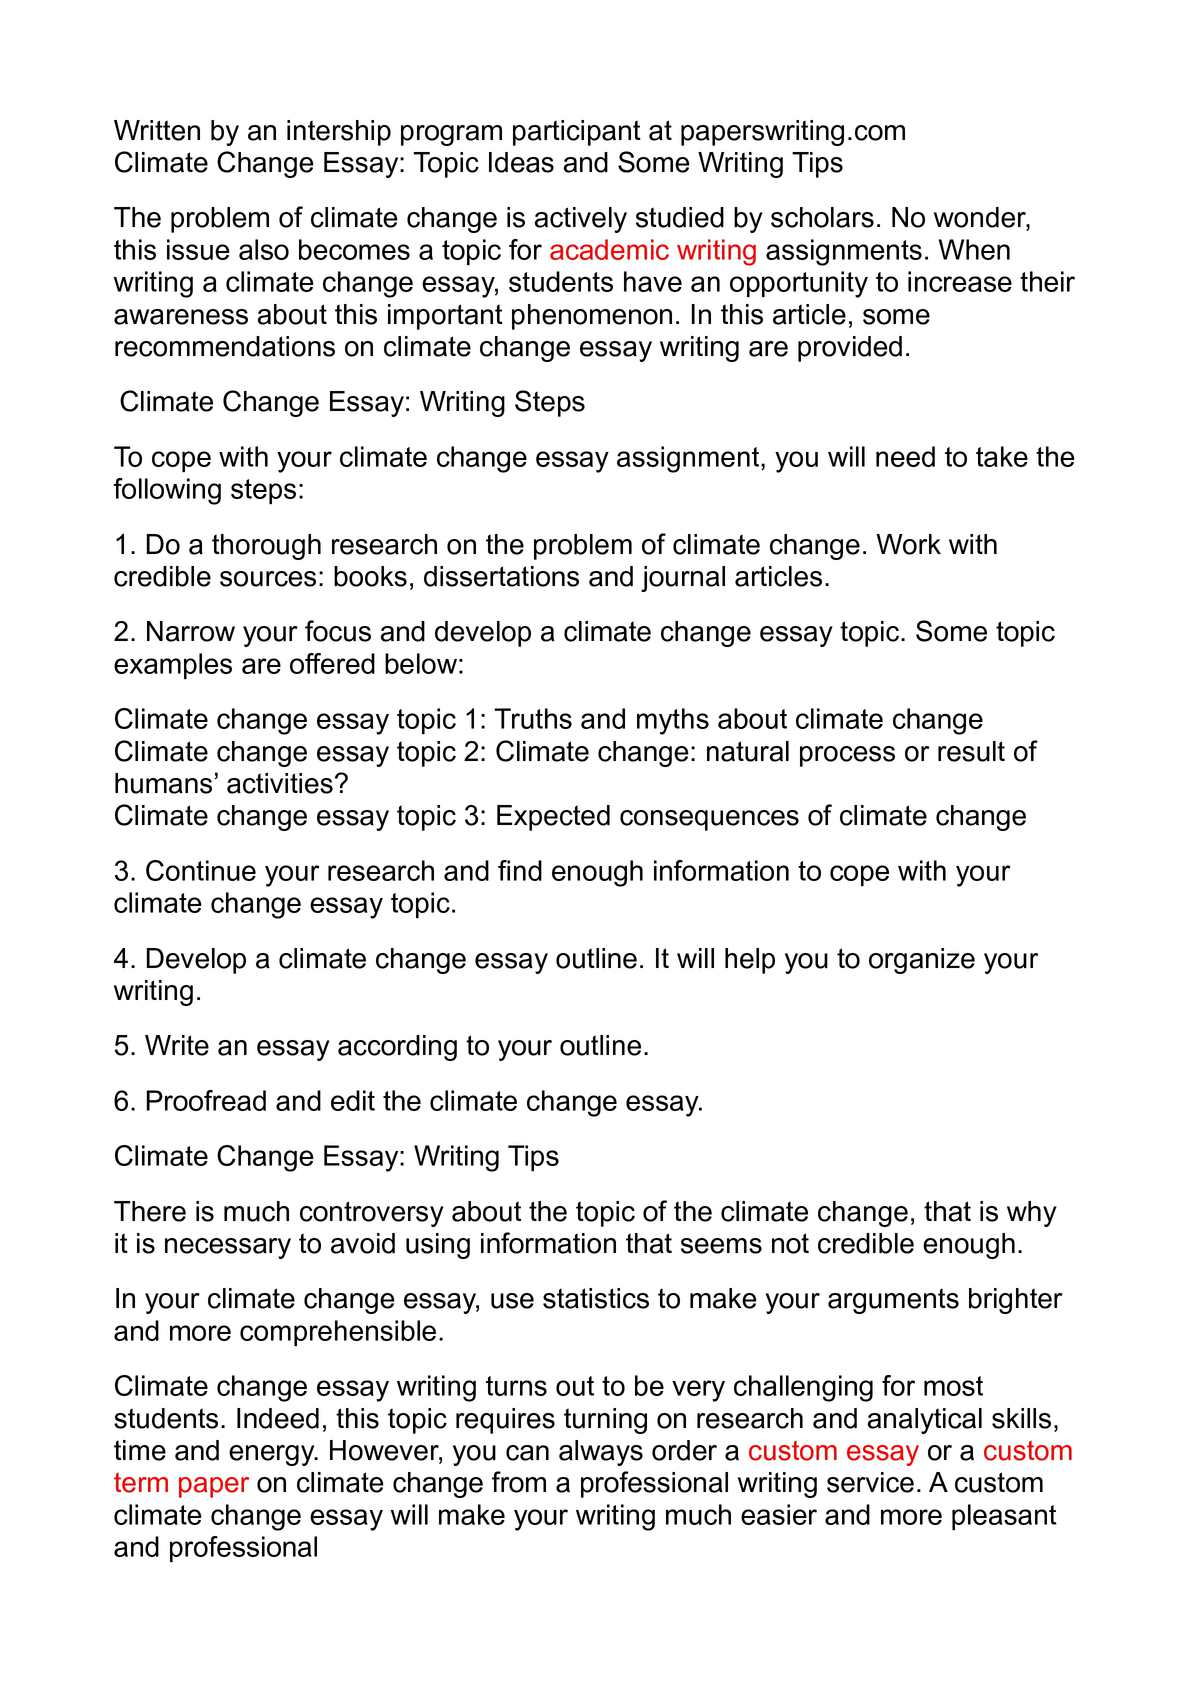 012 Climate Change Essay Topics Uncategorized Global Warming Topic Ways To St Oracleboss Research Paper20 Paper Unusual Ideas For High School Good Full